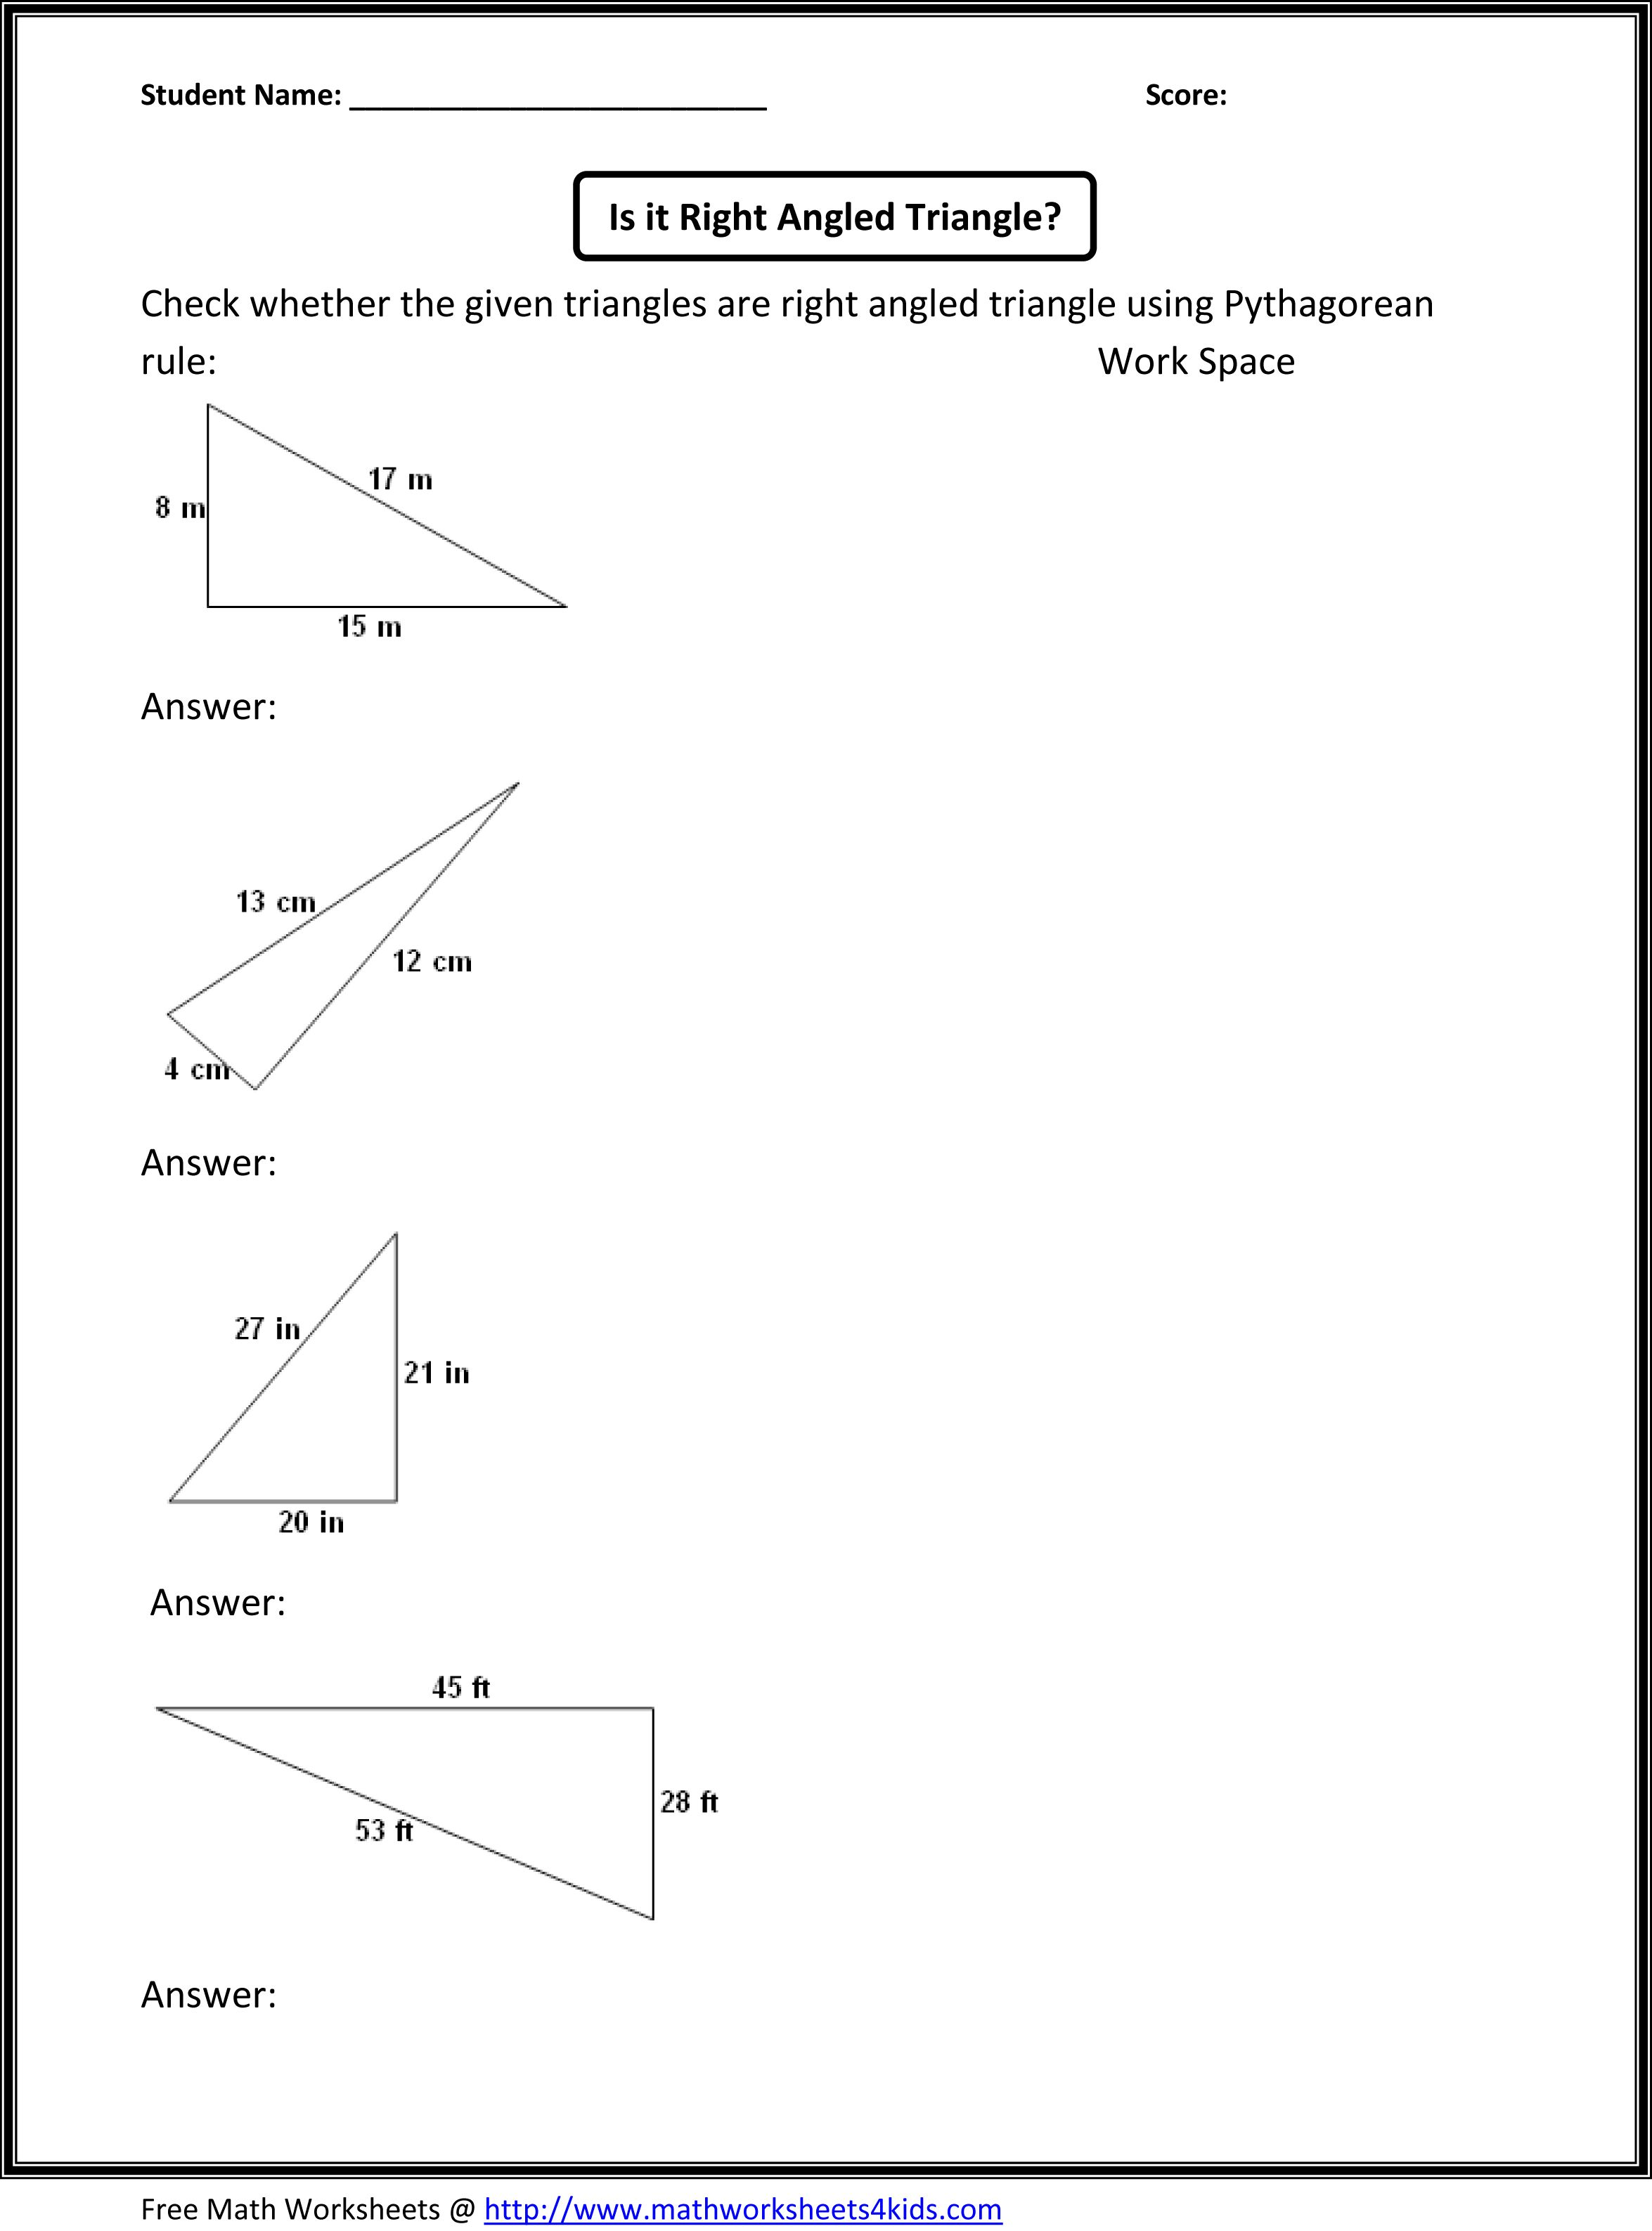 Worksheets Pythagorean Theorem Worksheet 8th Grade pythagorean theorem worksheet activities worksheet